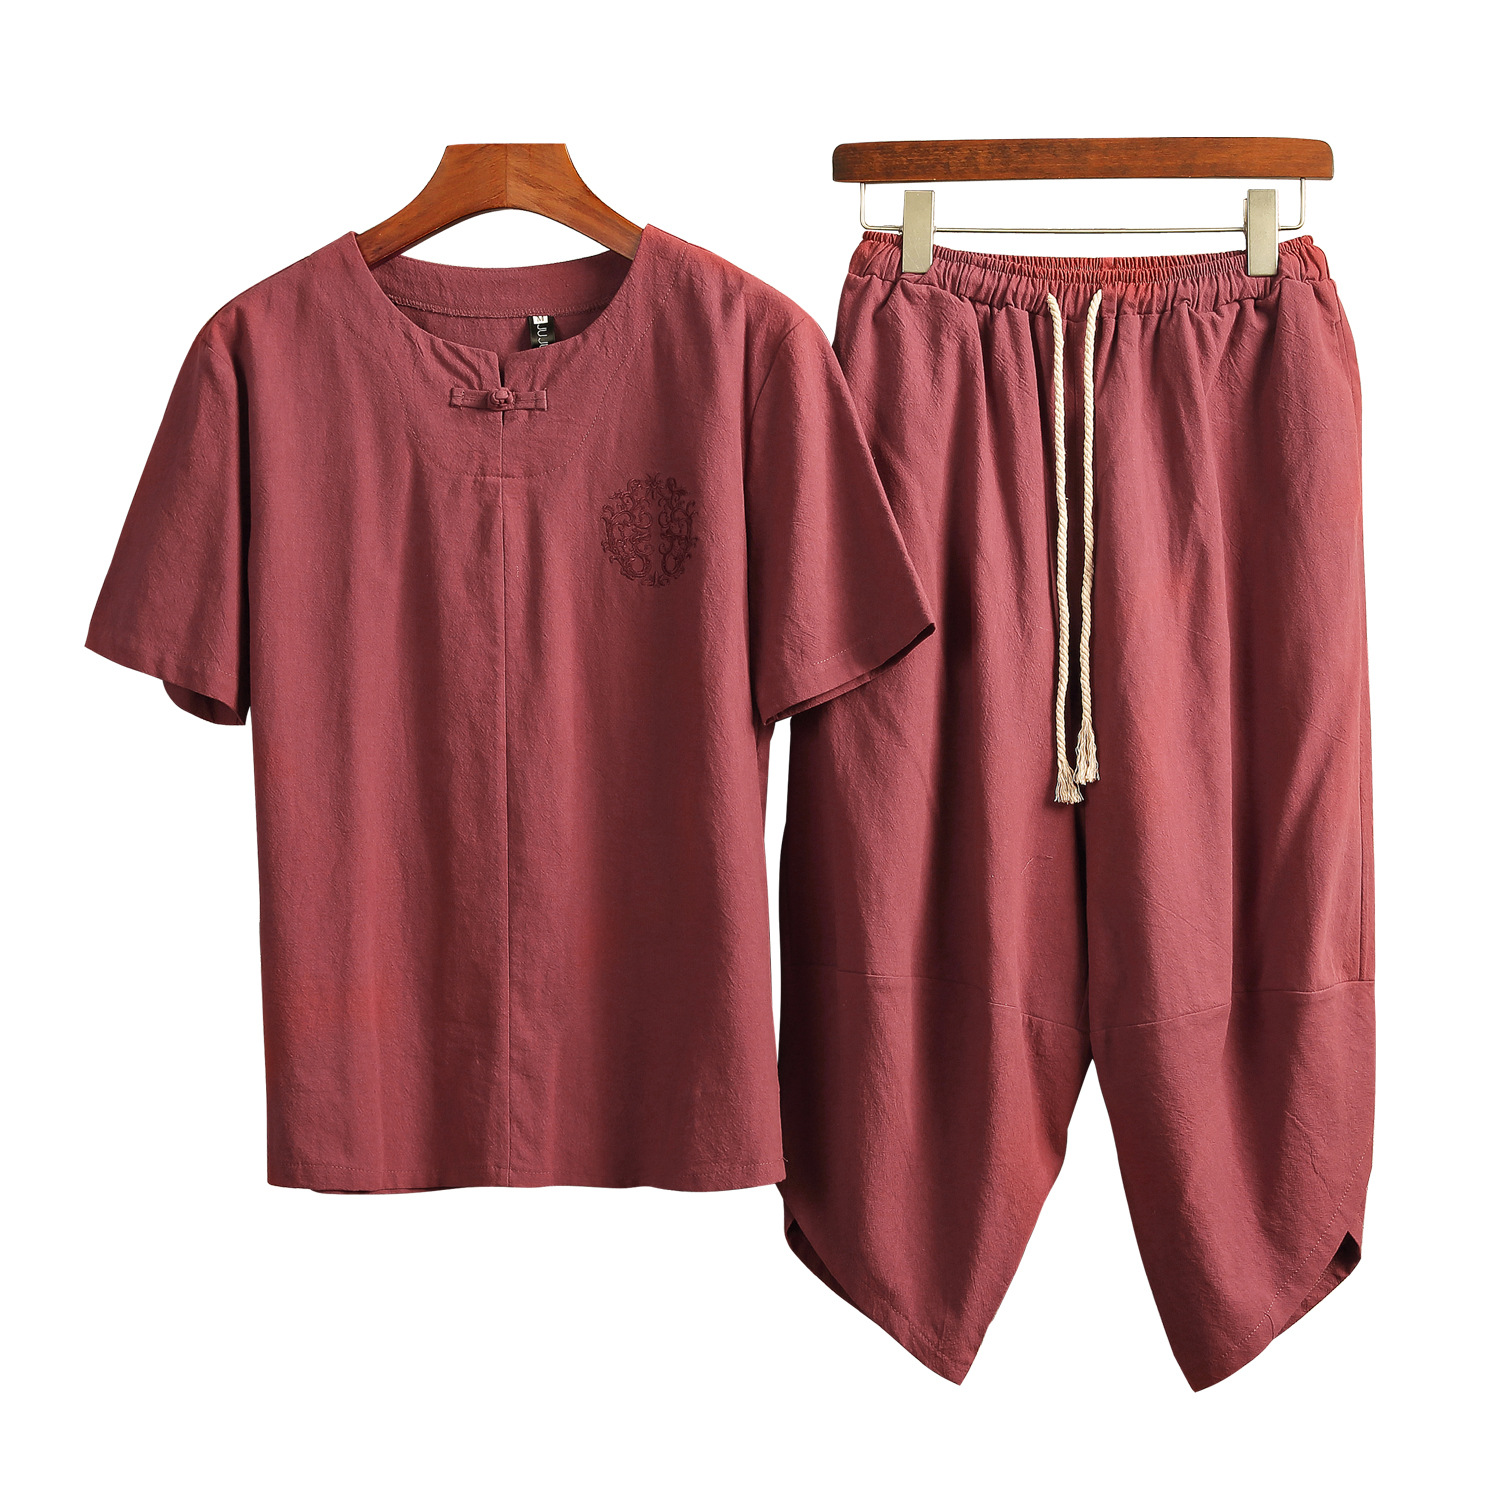 Summer New Style Retro Chinese-style Men's Cotton Linen Short Sleeve T-shirt Suit Men Loose-Fit Capri Pants Flax Set